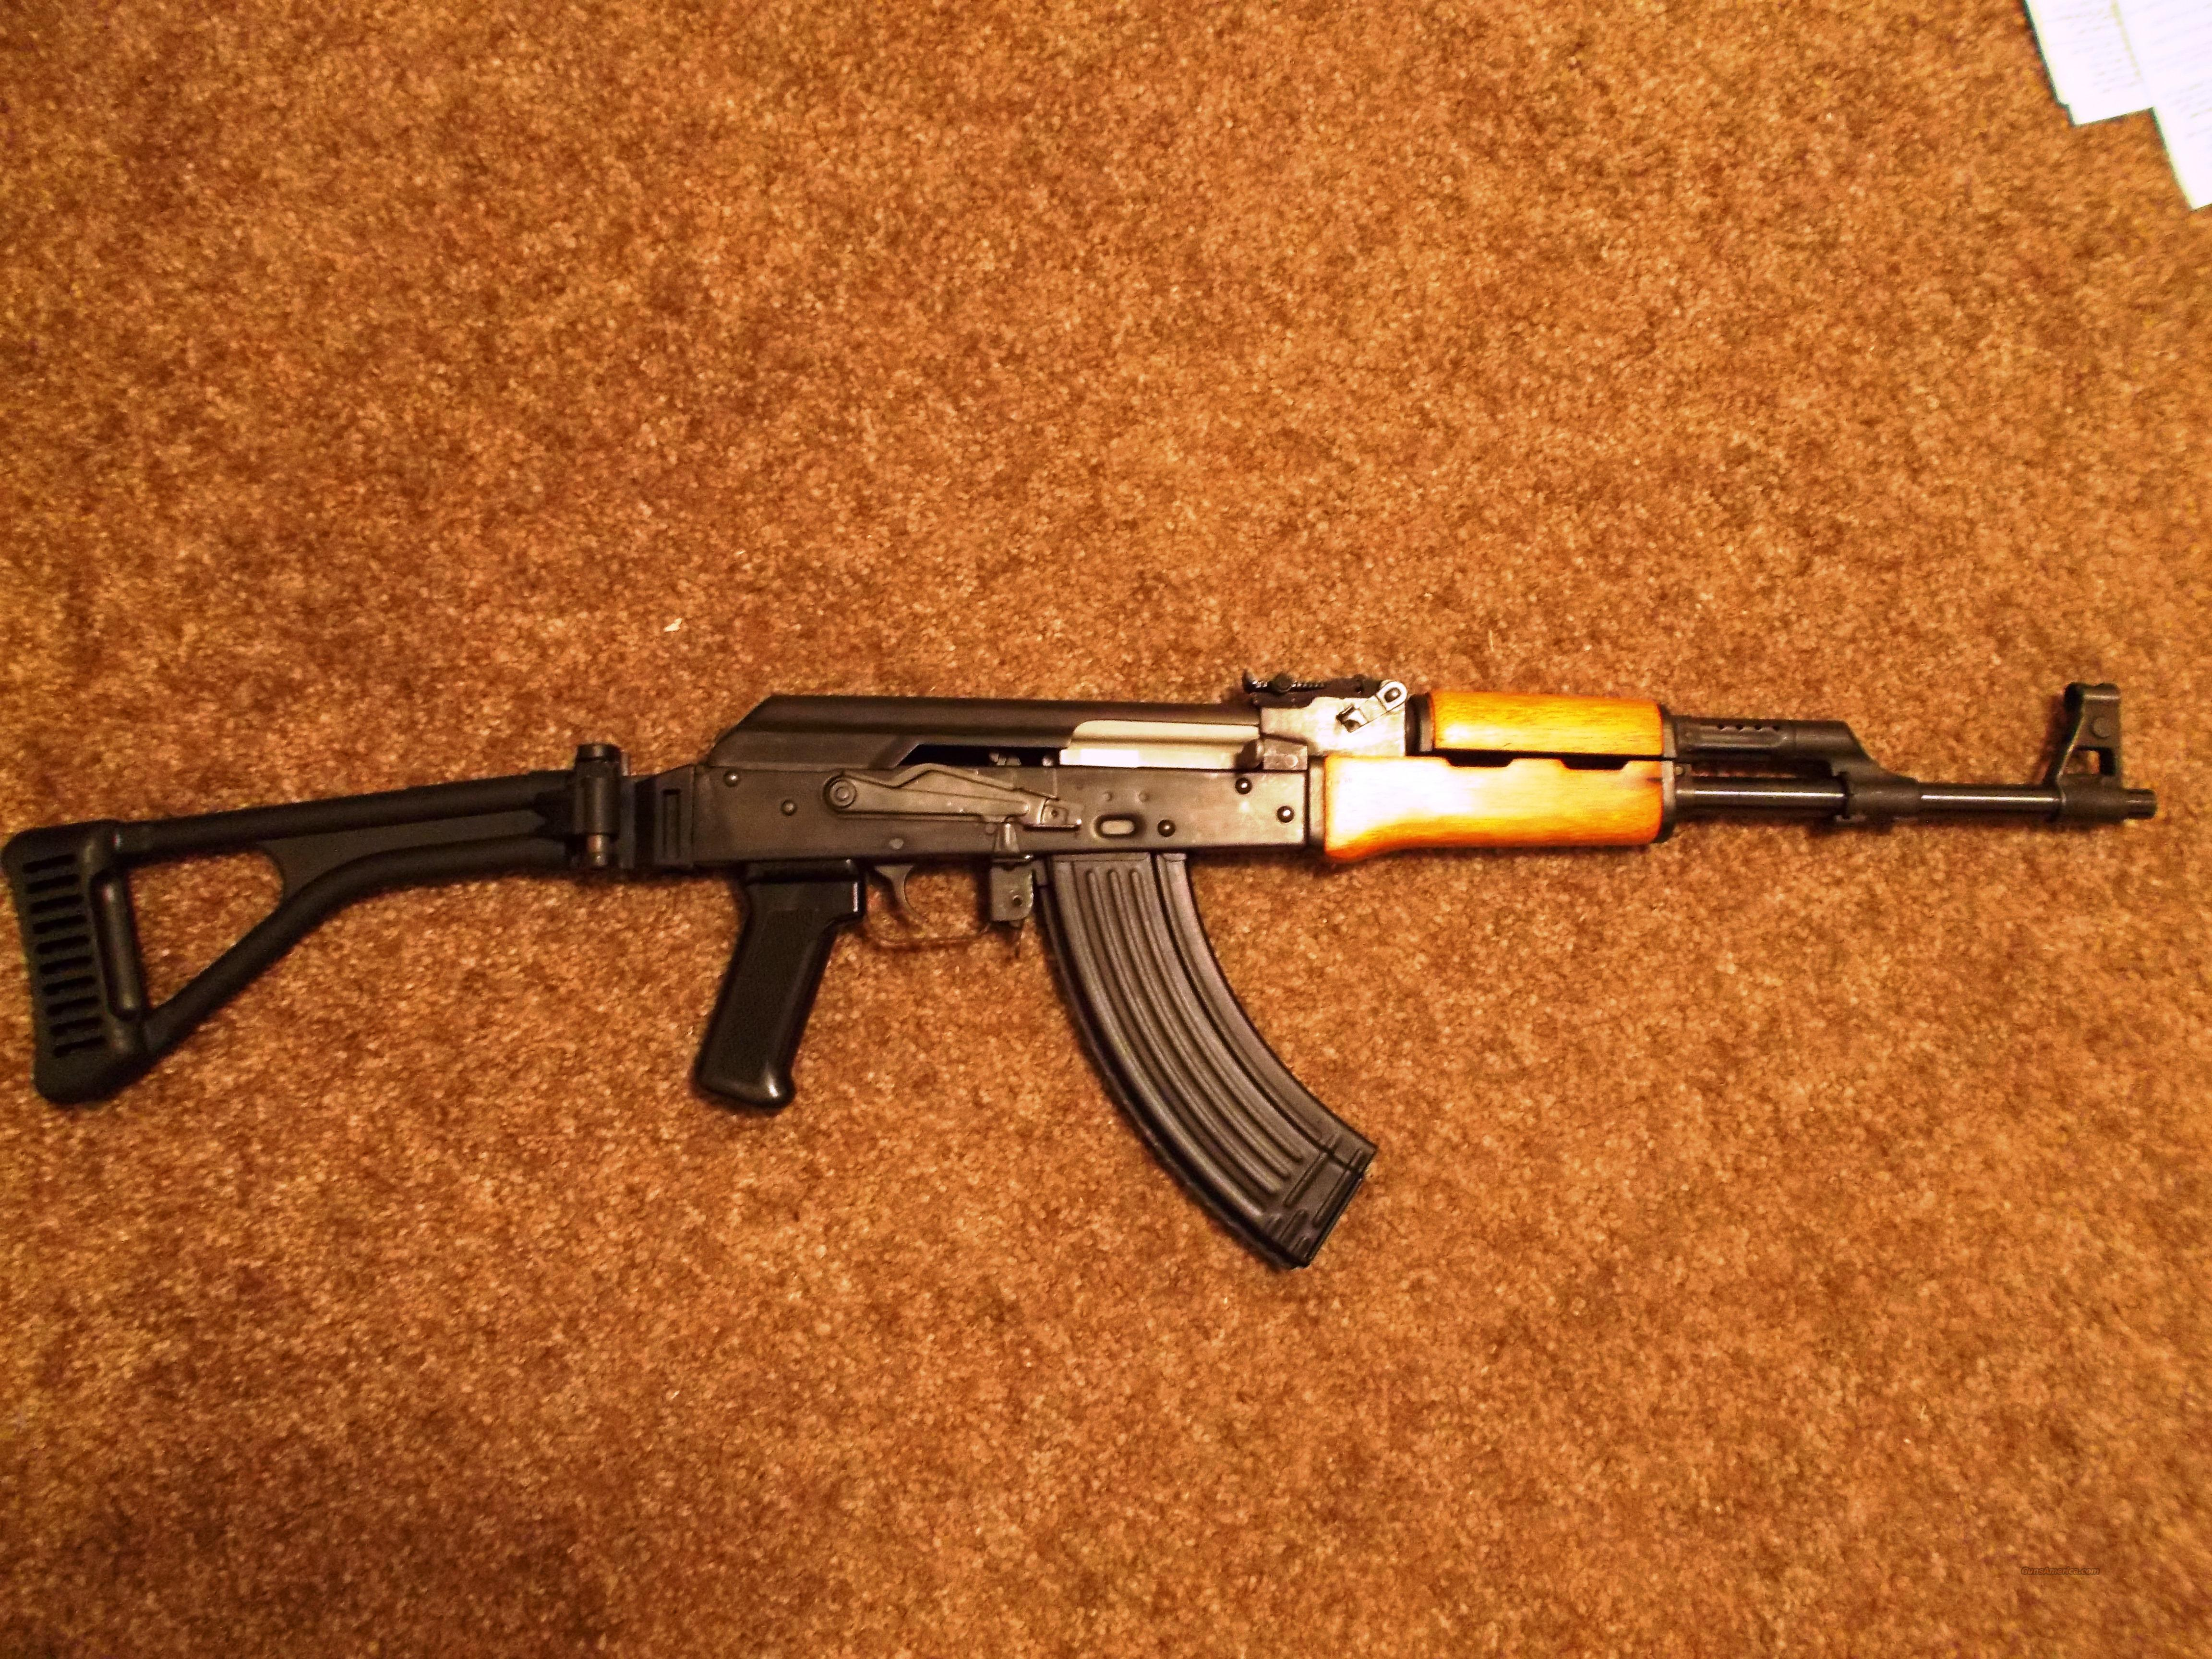 Norinco MAK 90 AK-47 w/ Tapco Folder and U.S. Parts  Guns > Rifles > AK-47 Rifles (and copies) > Folding Stock